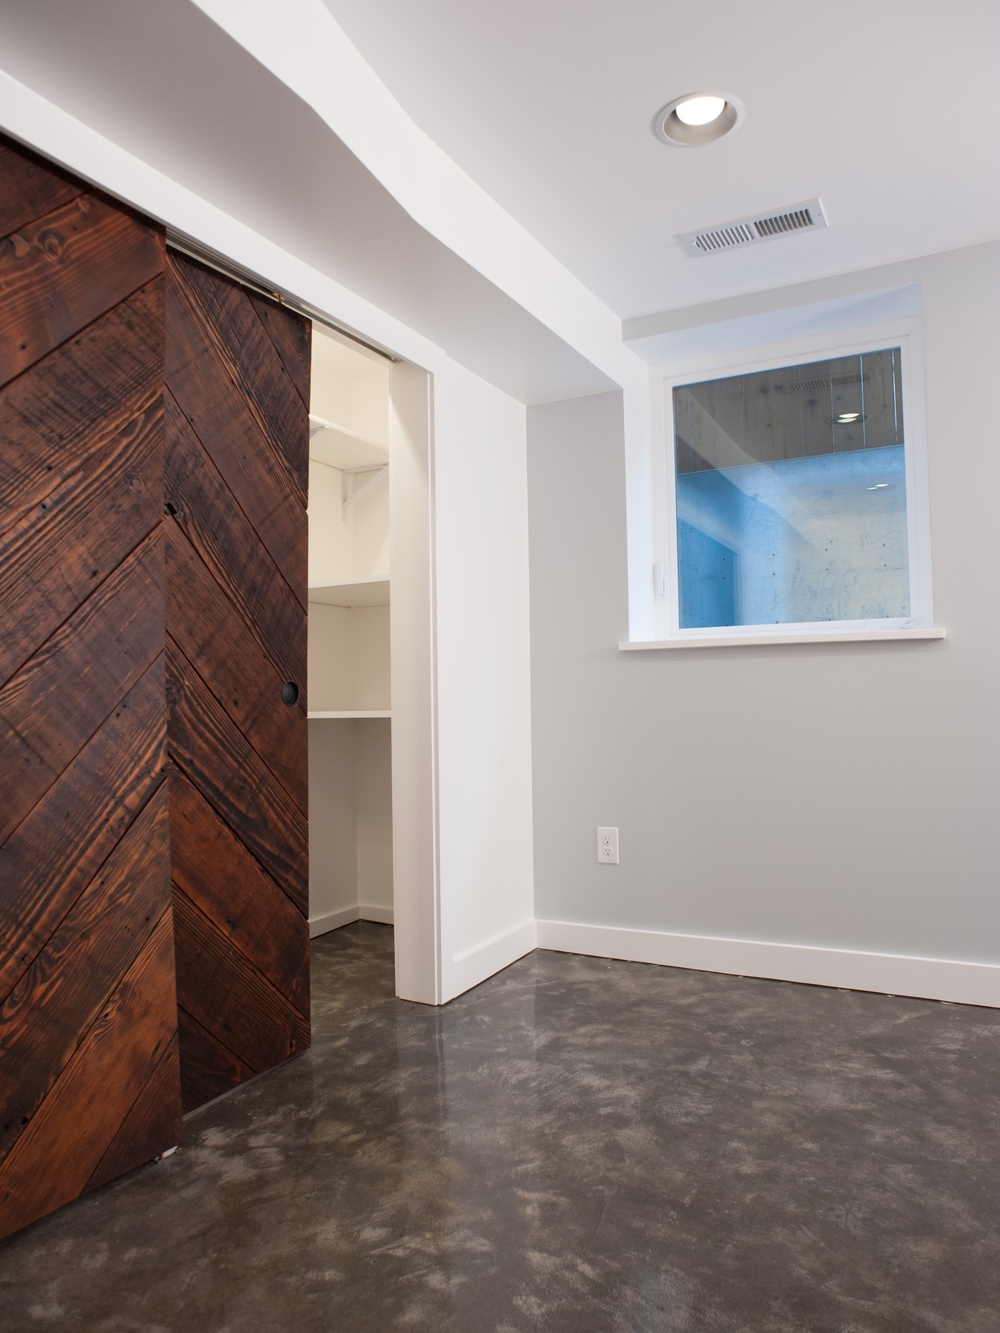 AFTER: All new finishes upon insulated walls, plus a new egress window make for a comfortable (and legal!) living space. Custom reclaimed-wood bypass closet doors and stained concrete floors are statements in an otherwise simple room.